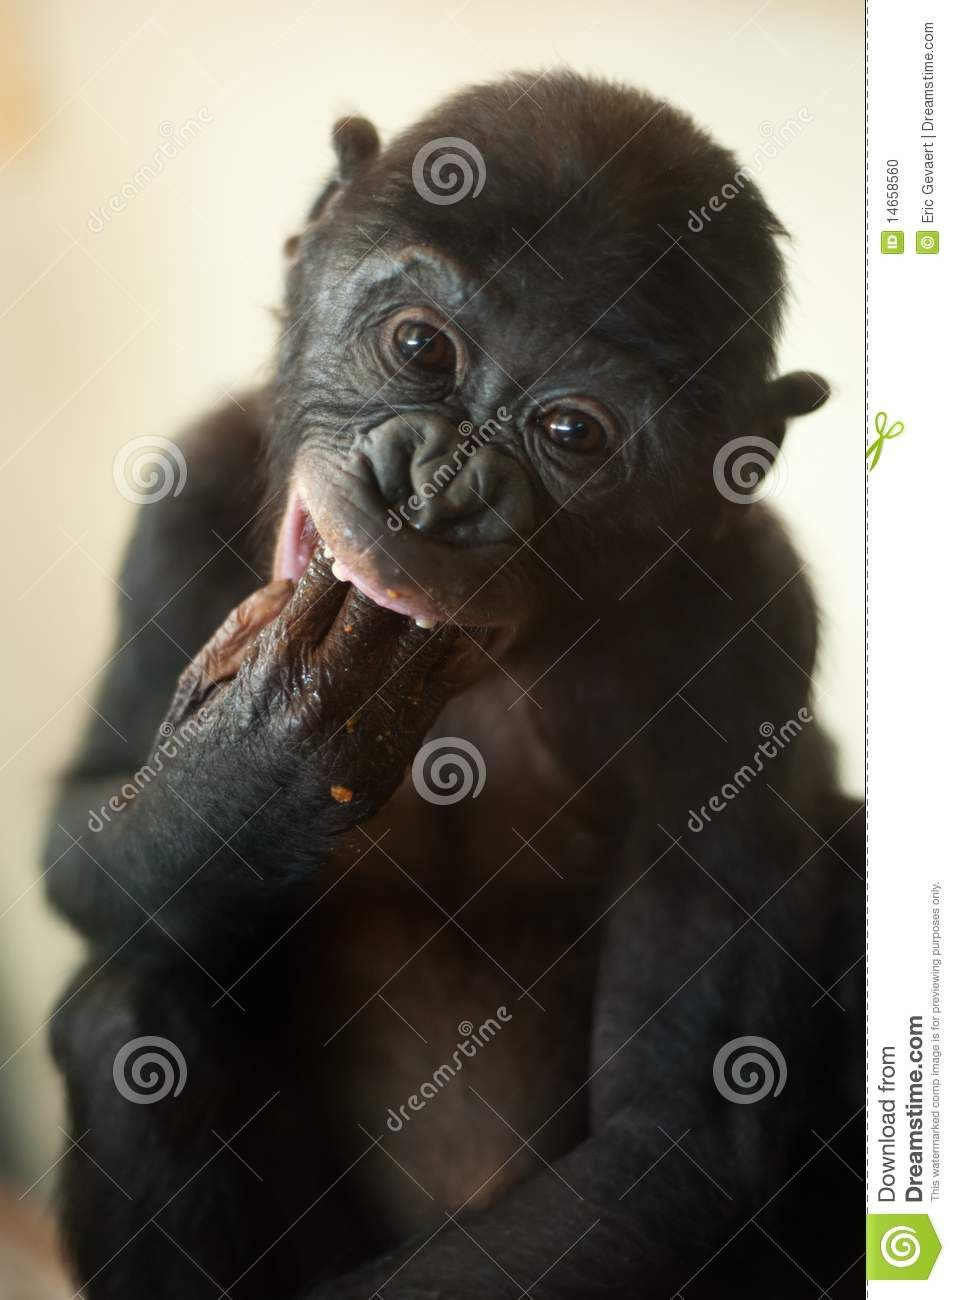 Bonobos clipart royalty free Pin by Rebecca Hanson on MONKEYS AND APES | Monkey, Animals, Cute ... royalty free